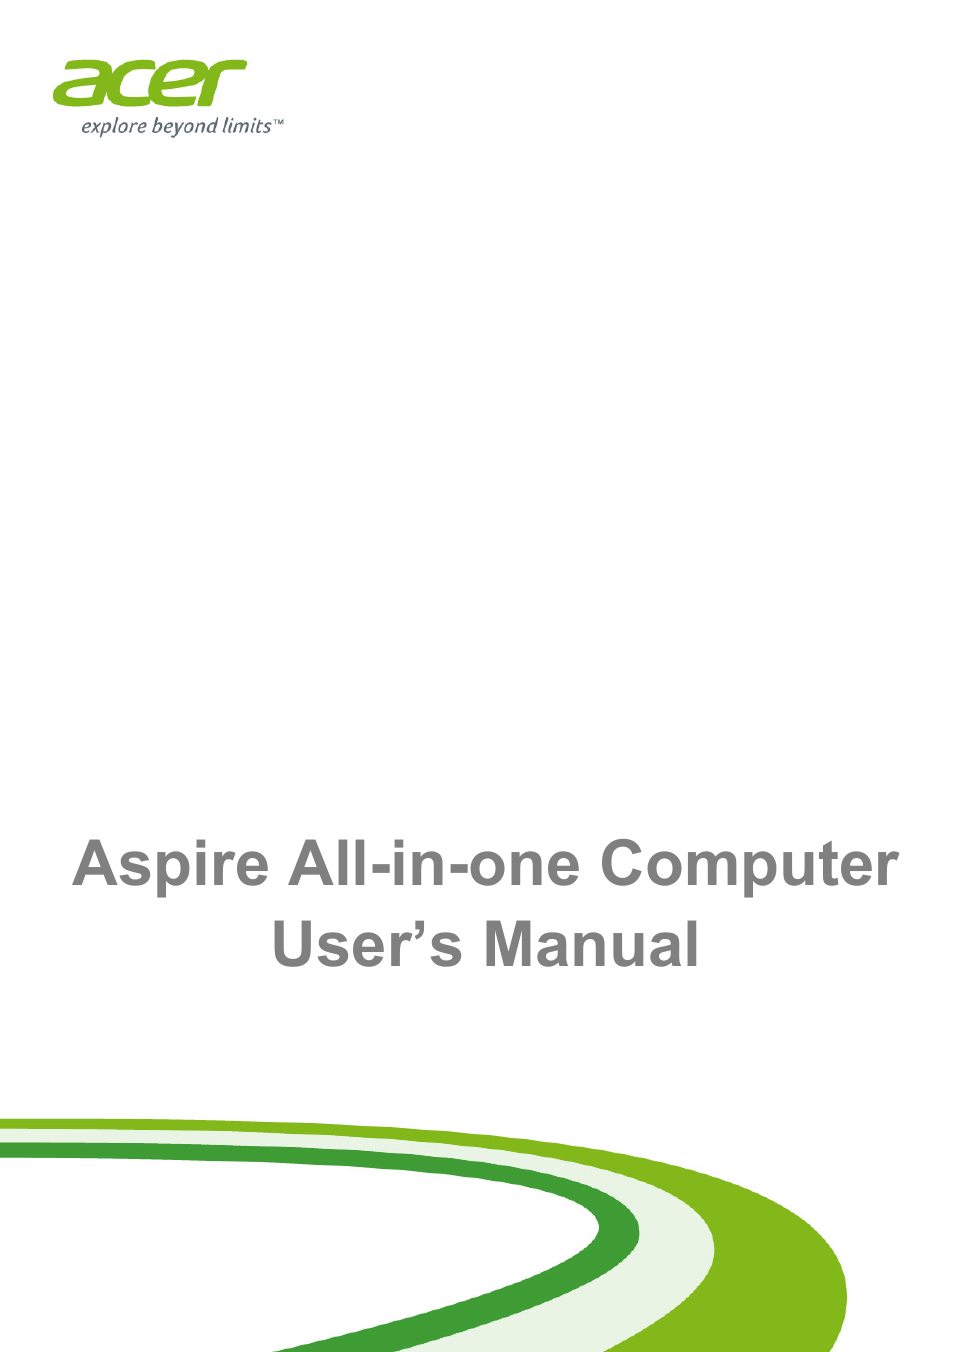 acer aspire zc 105 user manual 63 pages also for aspire zc 602 rh manualsdir com acer aspire 1 user manual acer aspire one 722 user manual